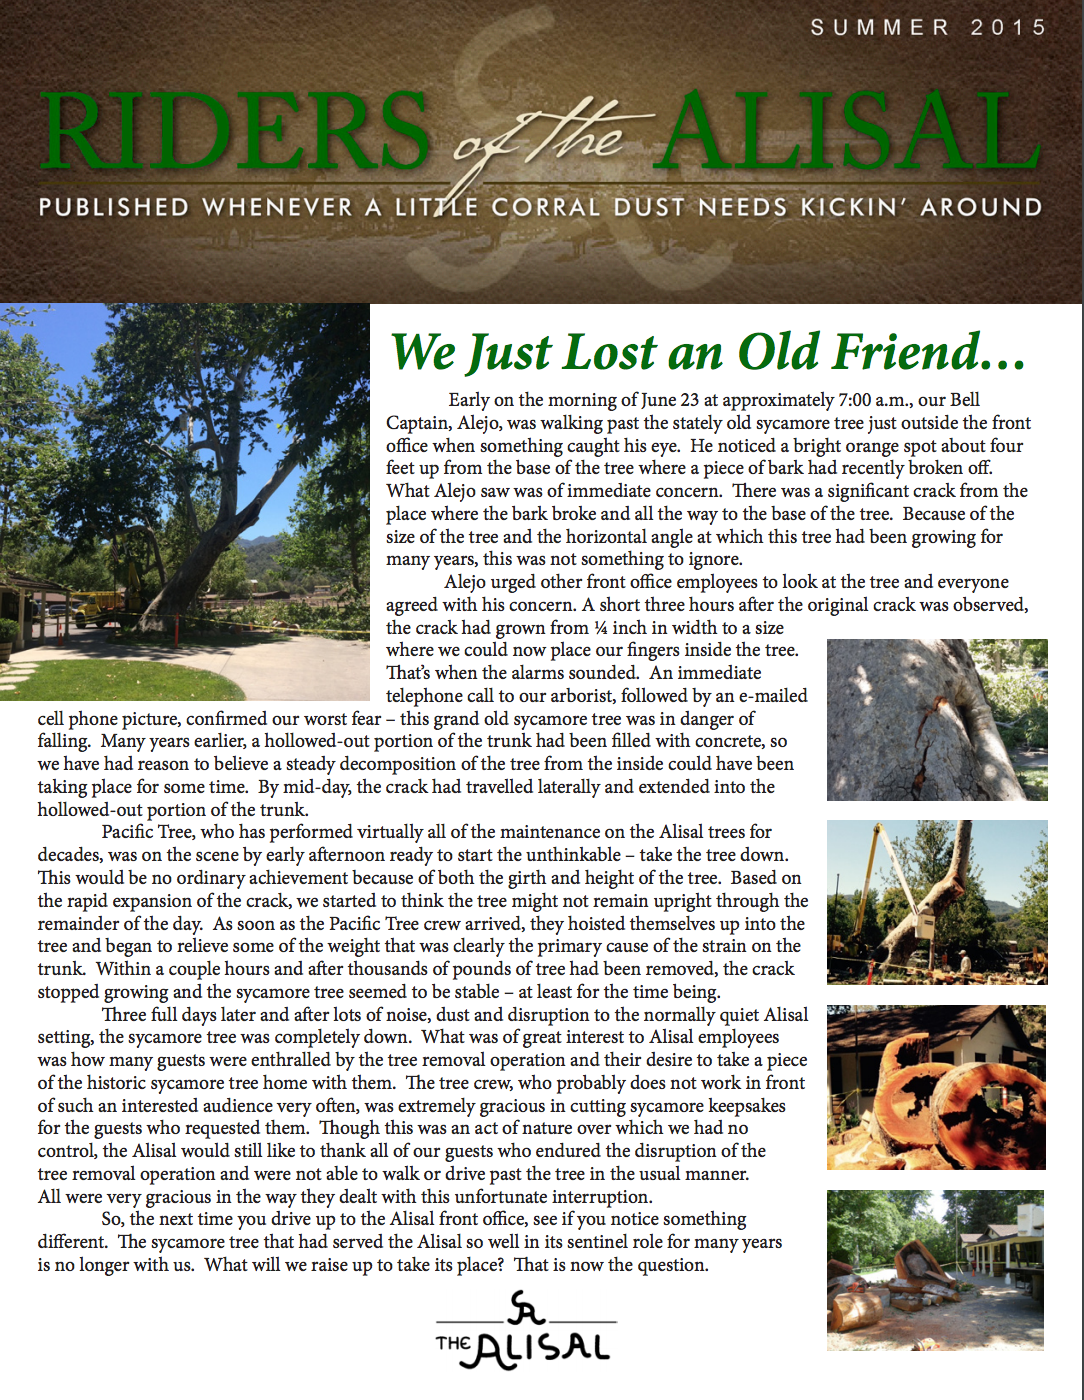 Riders of the Alisal 2015 Summer issue - Alisal Guest Ranch and Resort